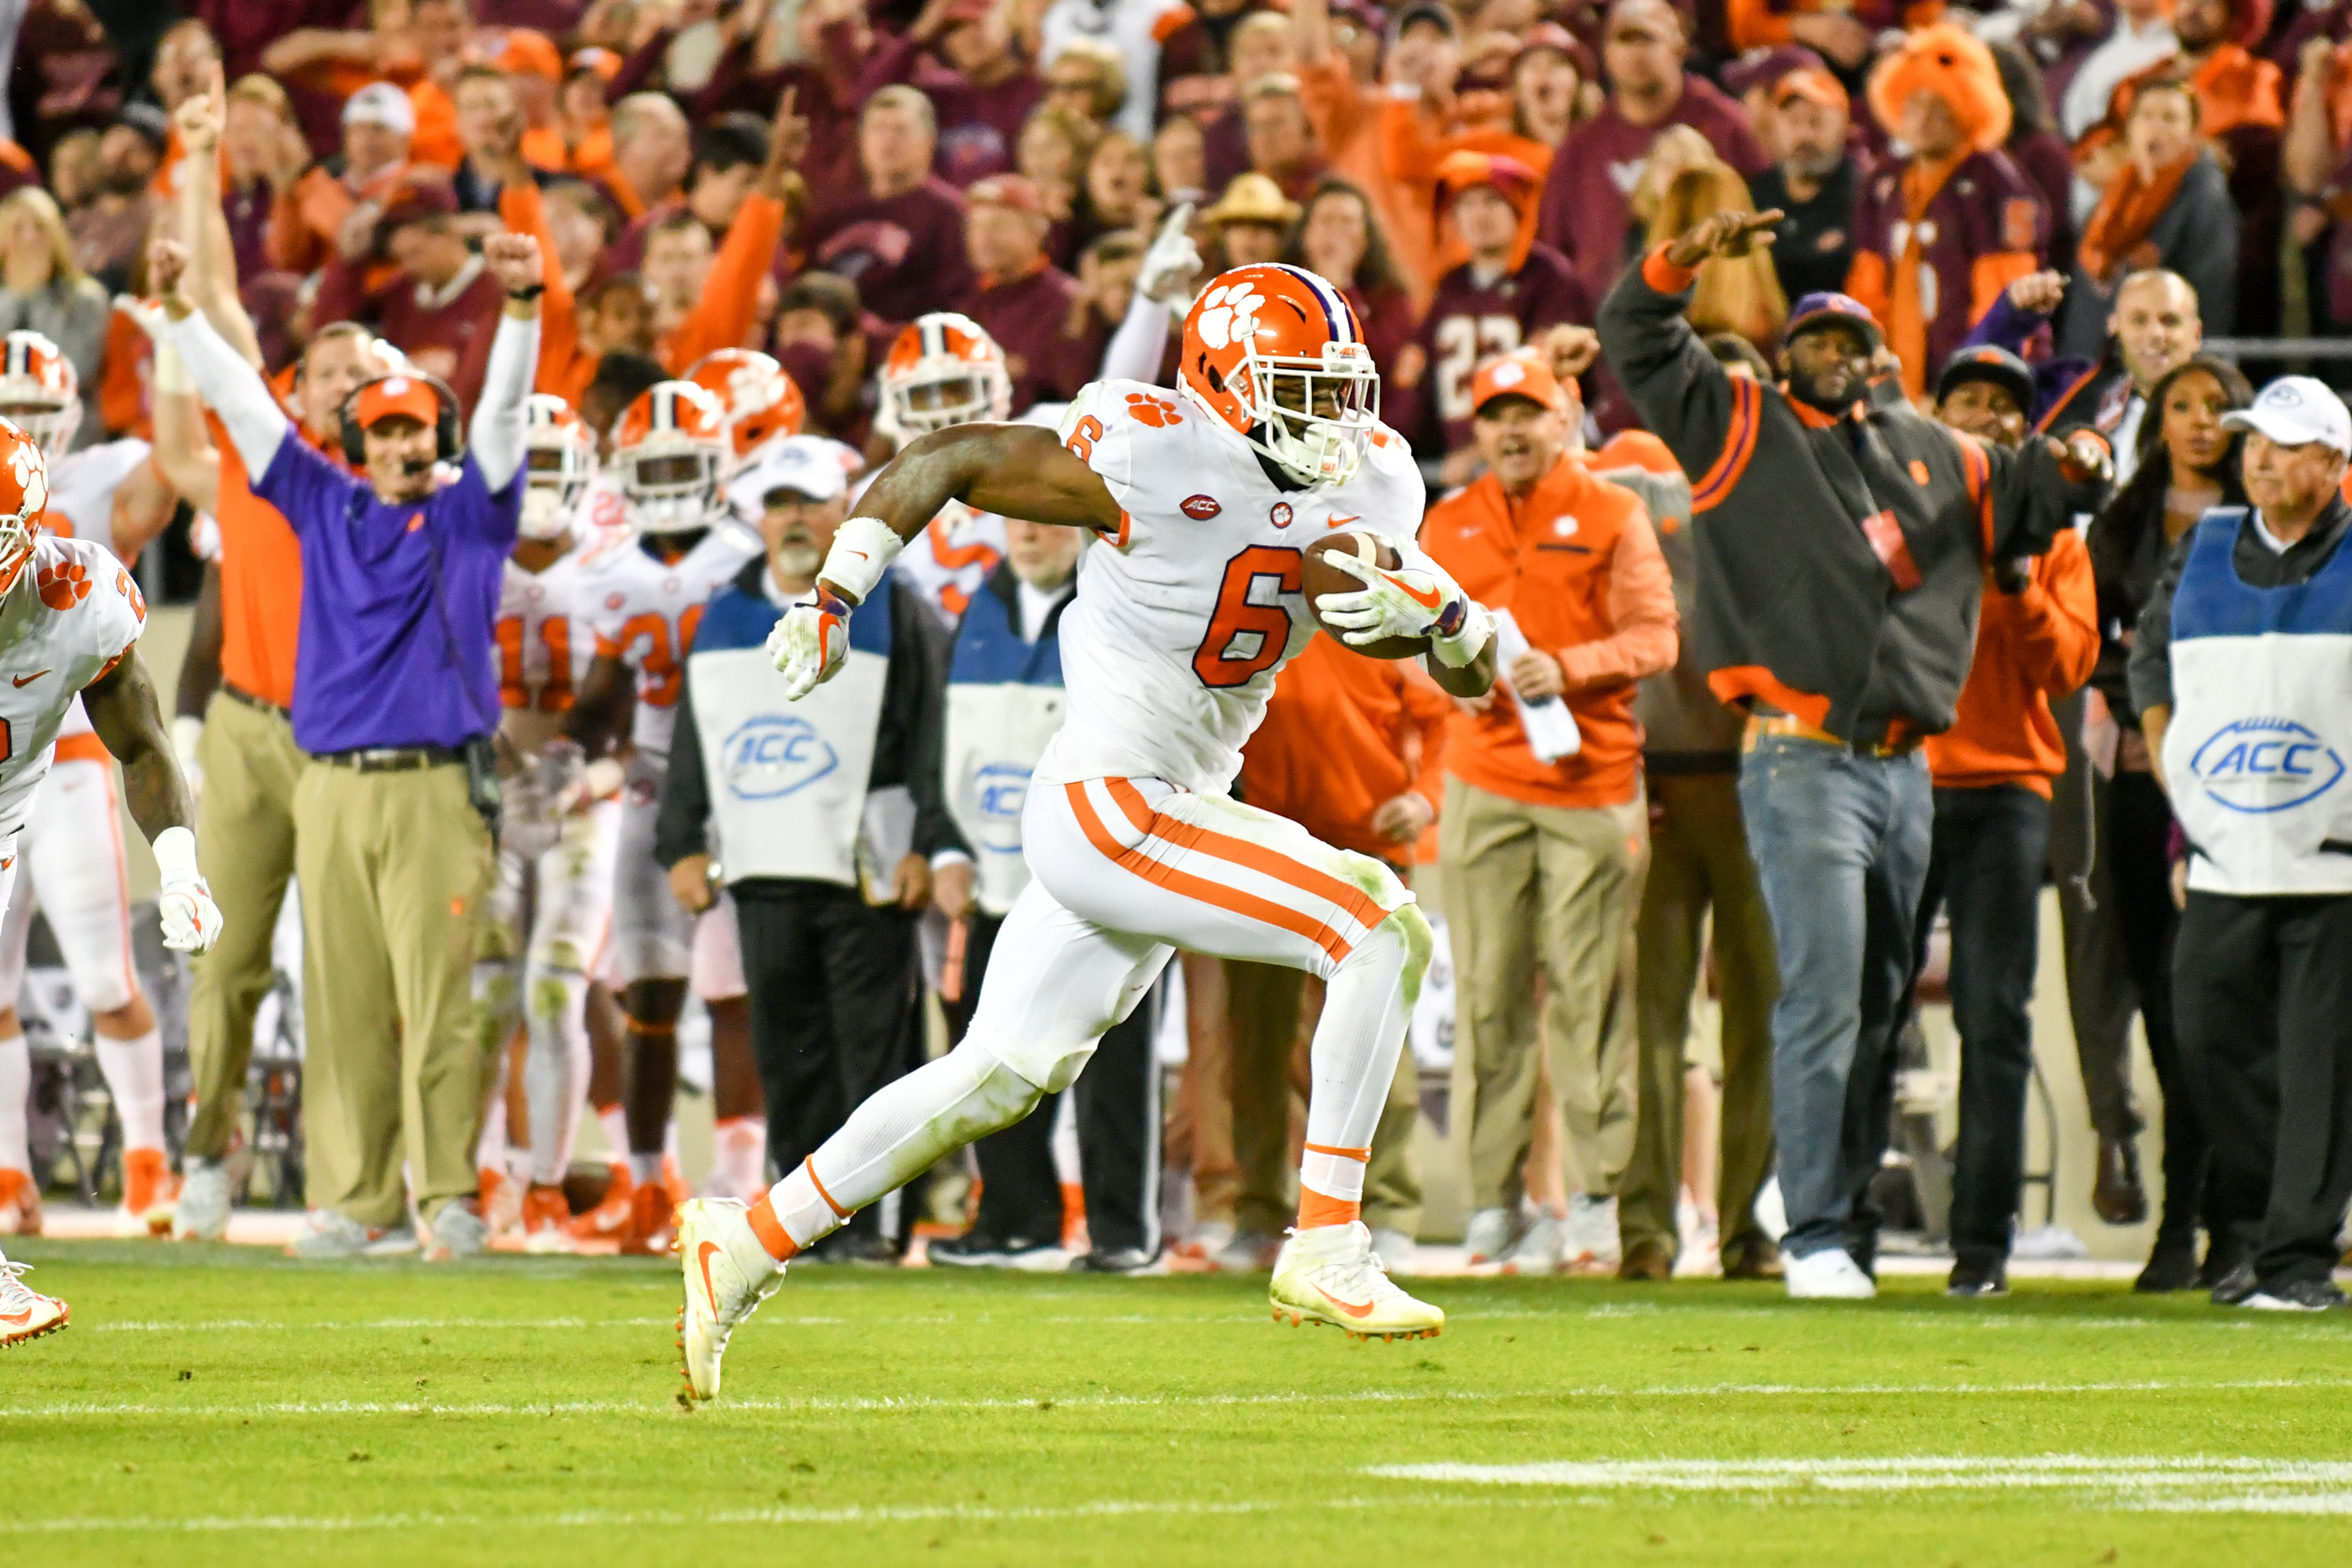 Tigers Remain No. 4 in College Football Playoff Poll